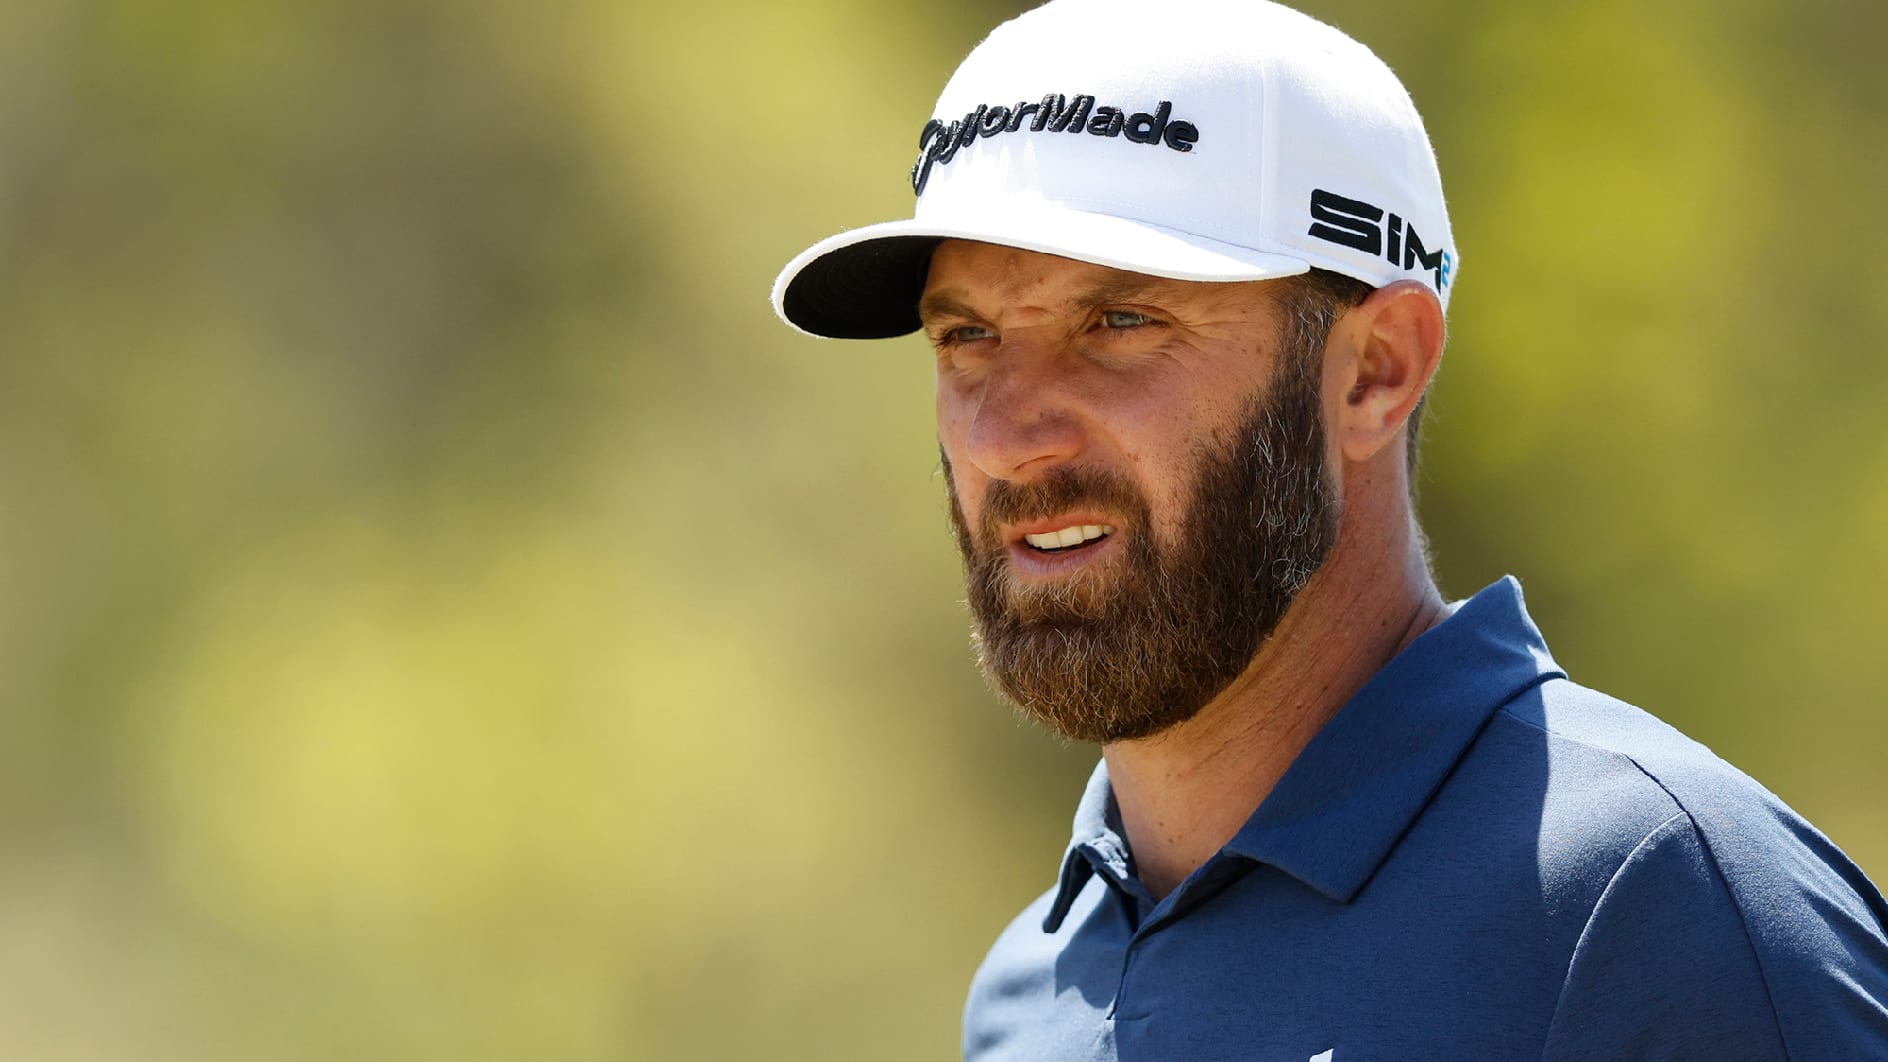 What's really going on in Dustin Johnson's head? Coaches and competitors say it's more than DJ lets on.